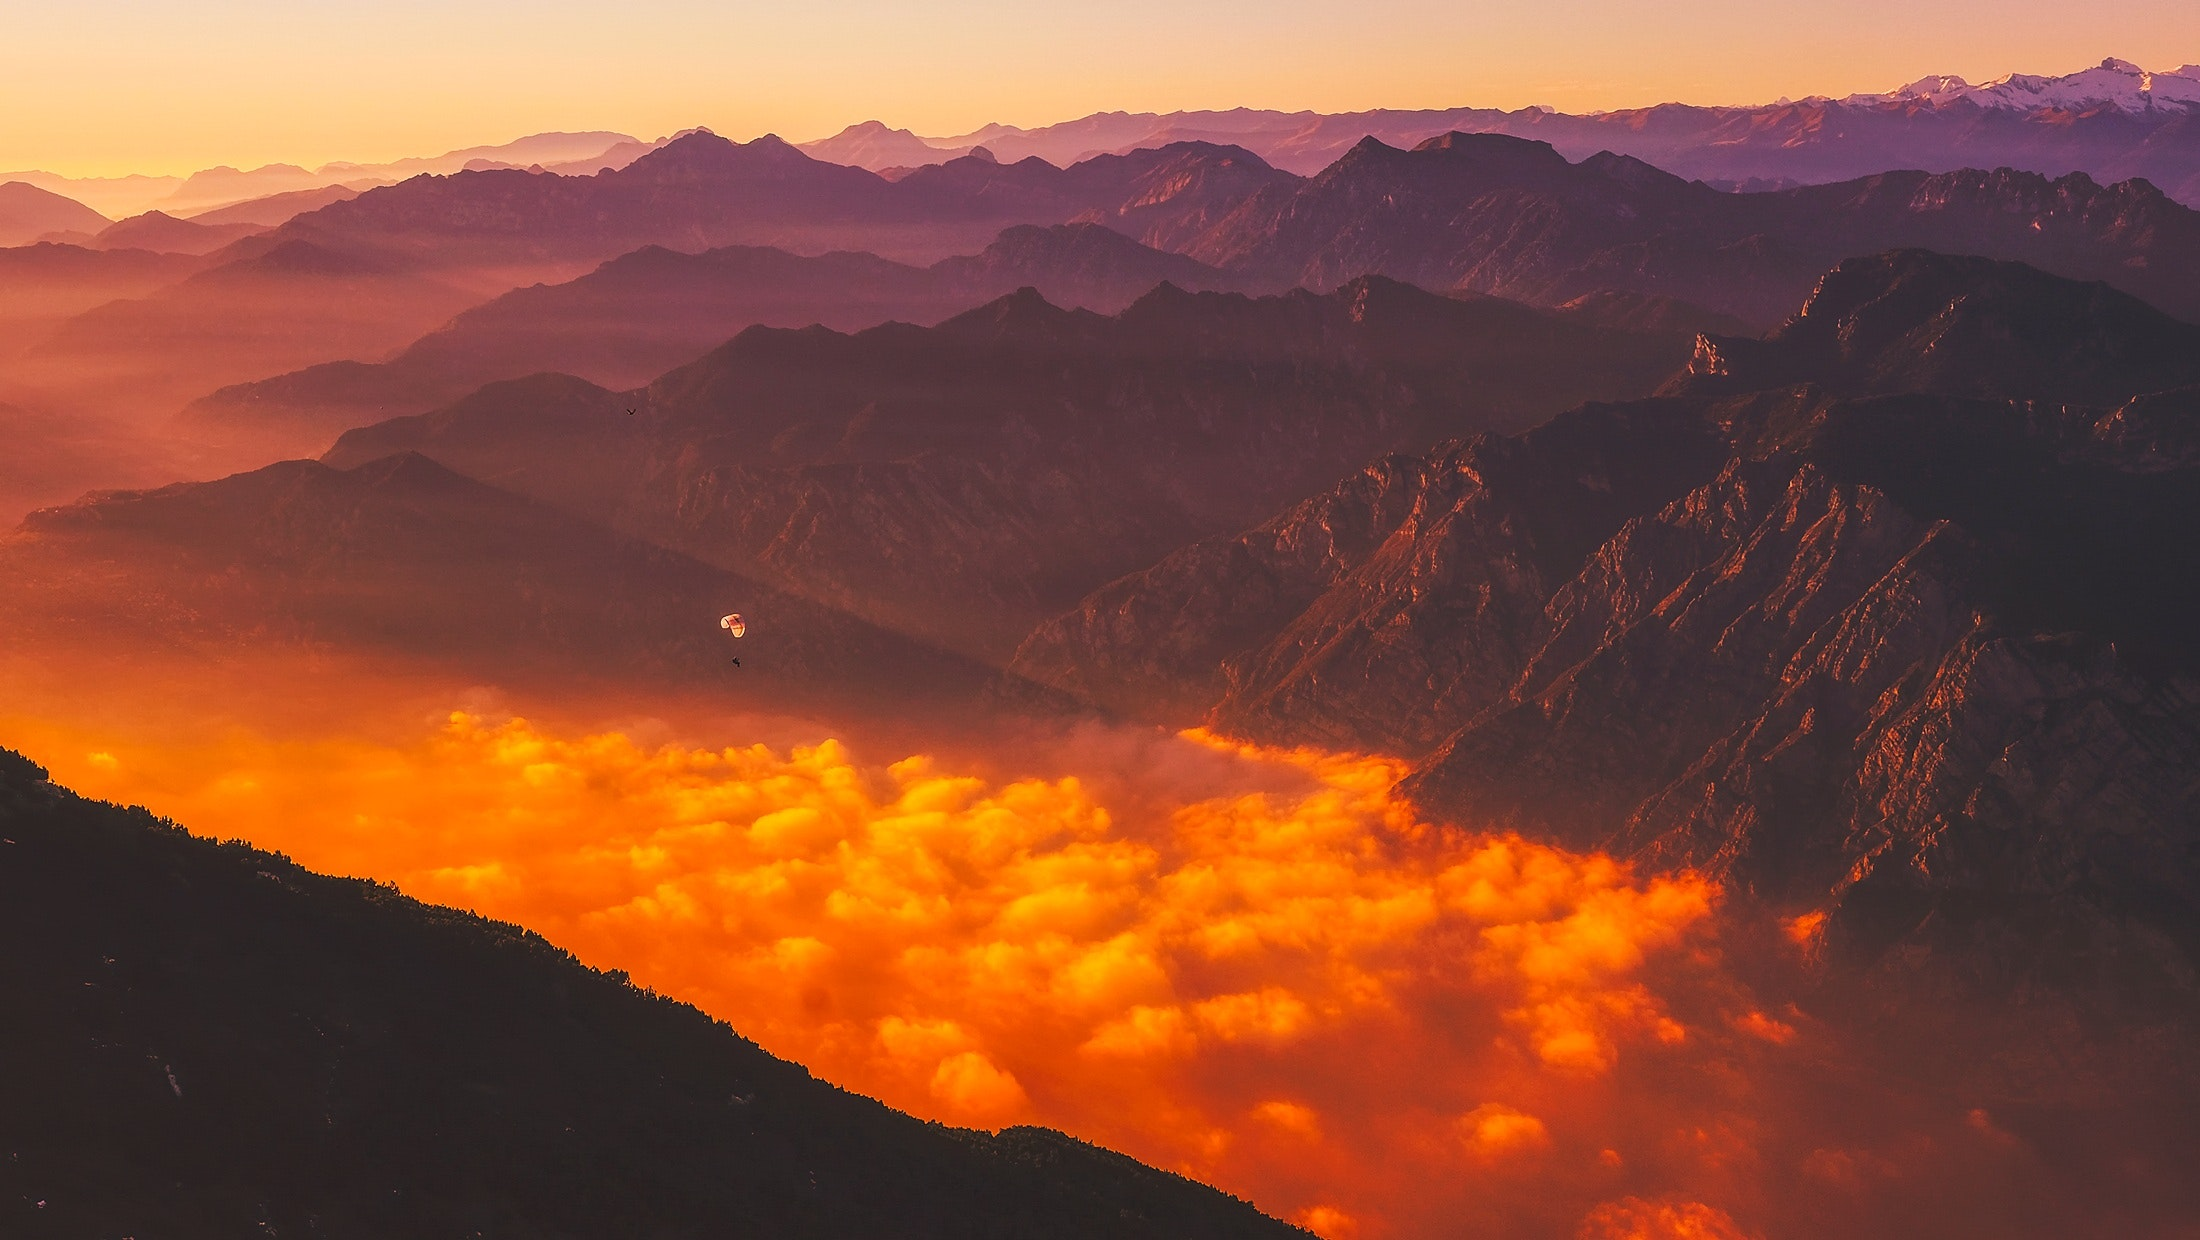 Scenic view of mountains against dramatic sky at sunset photo